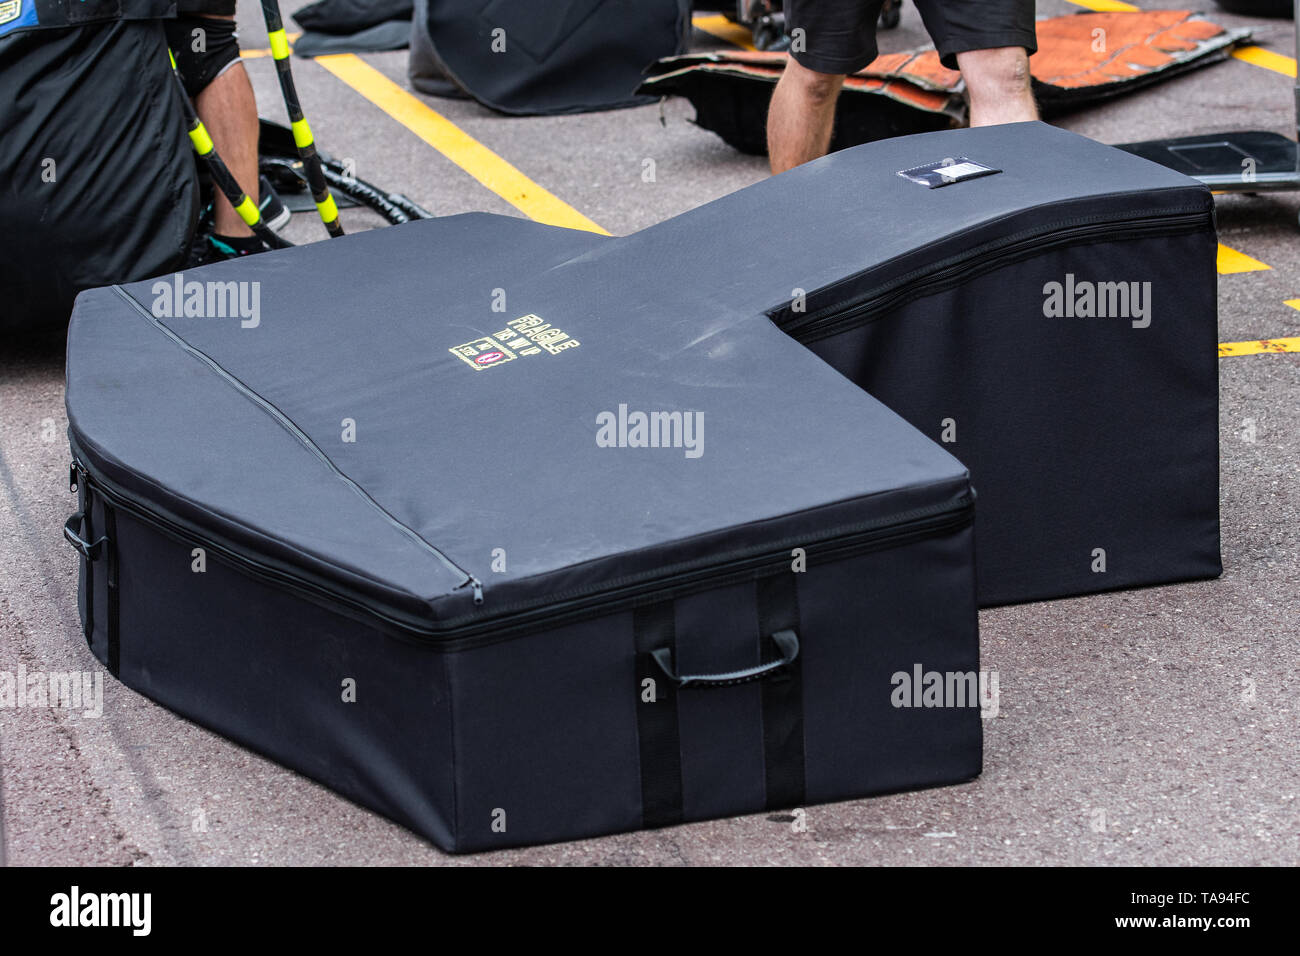 Monte Carlo/Monaco - 22/05/2019 - Mercedes F1 Team front wing ready to be unpacked in the pitlane ahead of the 2019 Monaco Grand Prix - Stock Image